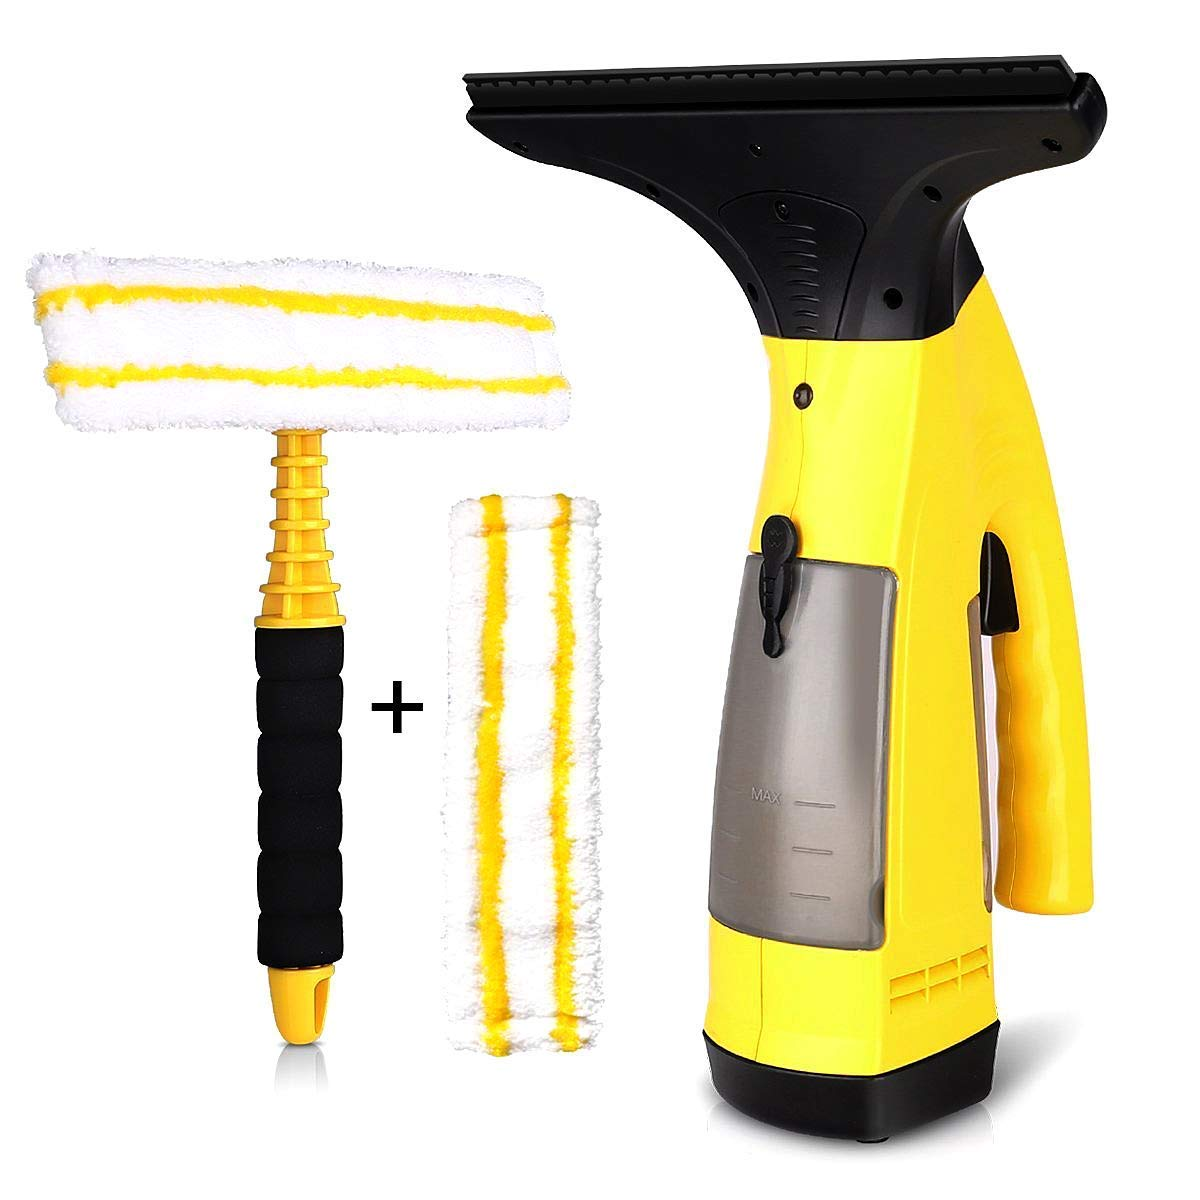 Window Vacuum Cleaner, 5.5V/12W Cordless Window Vac Streak-Free Cleaner 2-Piece Suit, Suitable for All Smooth Surfaces Such As Windows Tiles, Shower, Cabinets (EU Plug) Voker